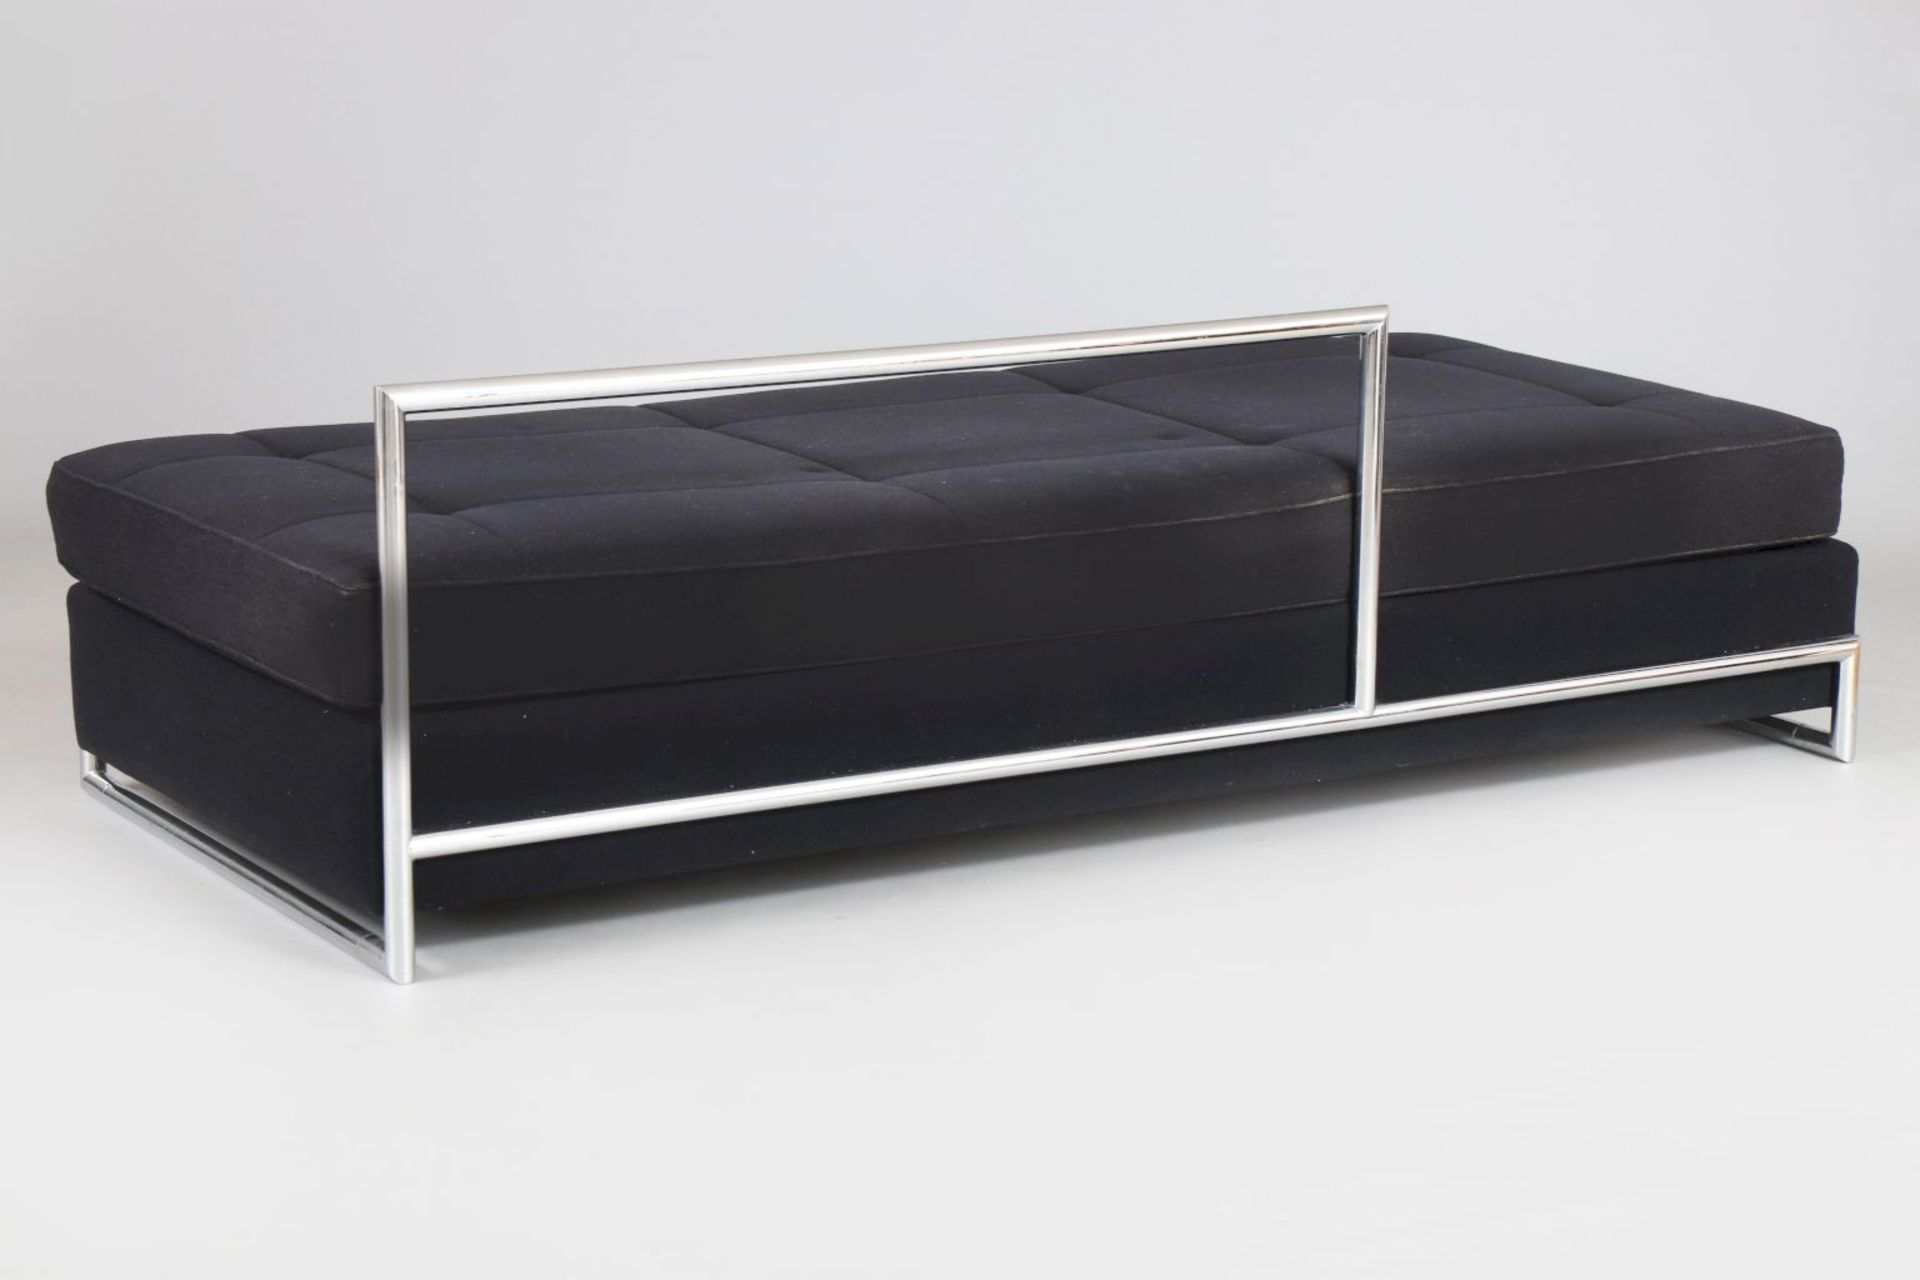 EILEEN GRAY Daybed - Image 2 of 3